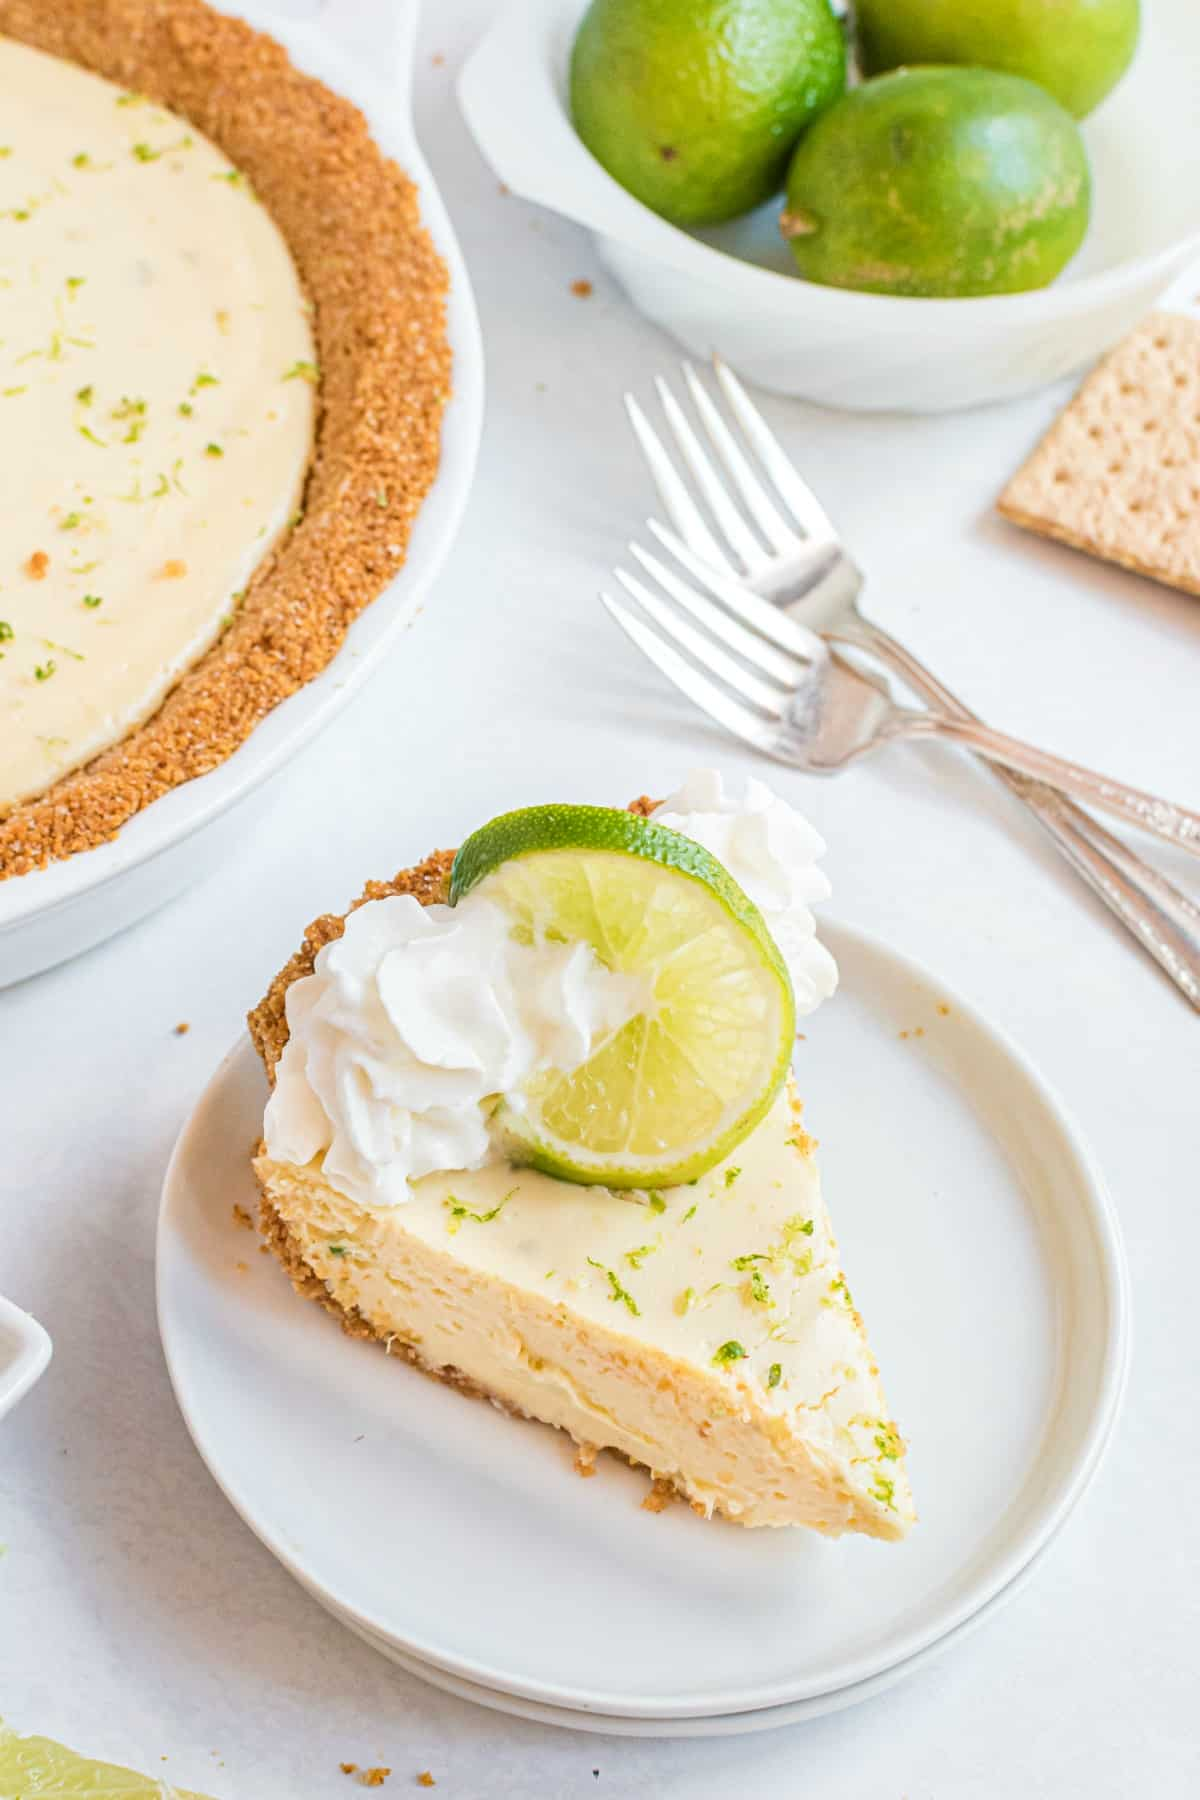 Slice of key lime pie on a white plate and garnished with whipped cream, lime zest, and a slice of lime.